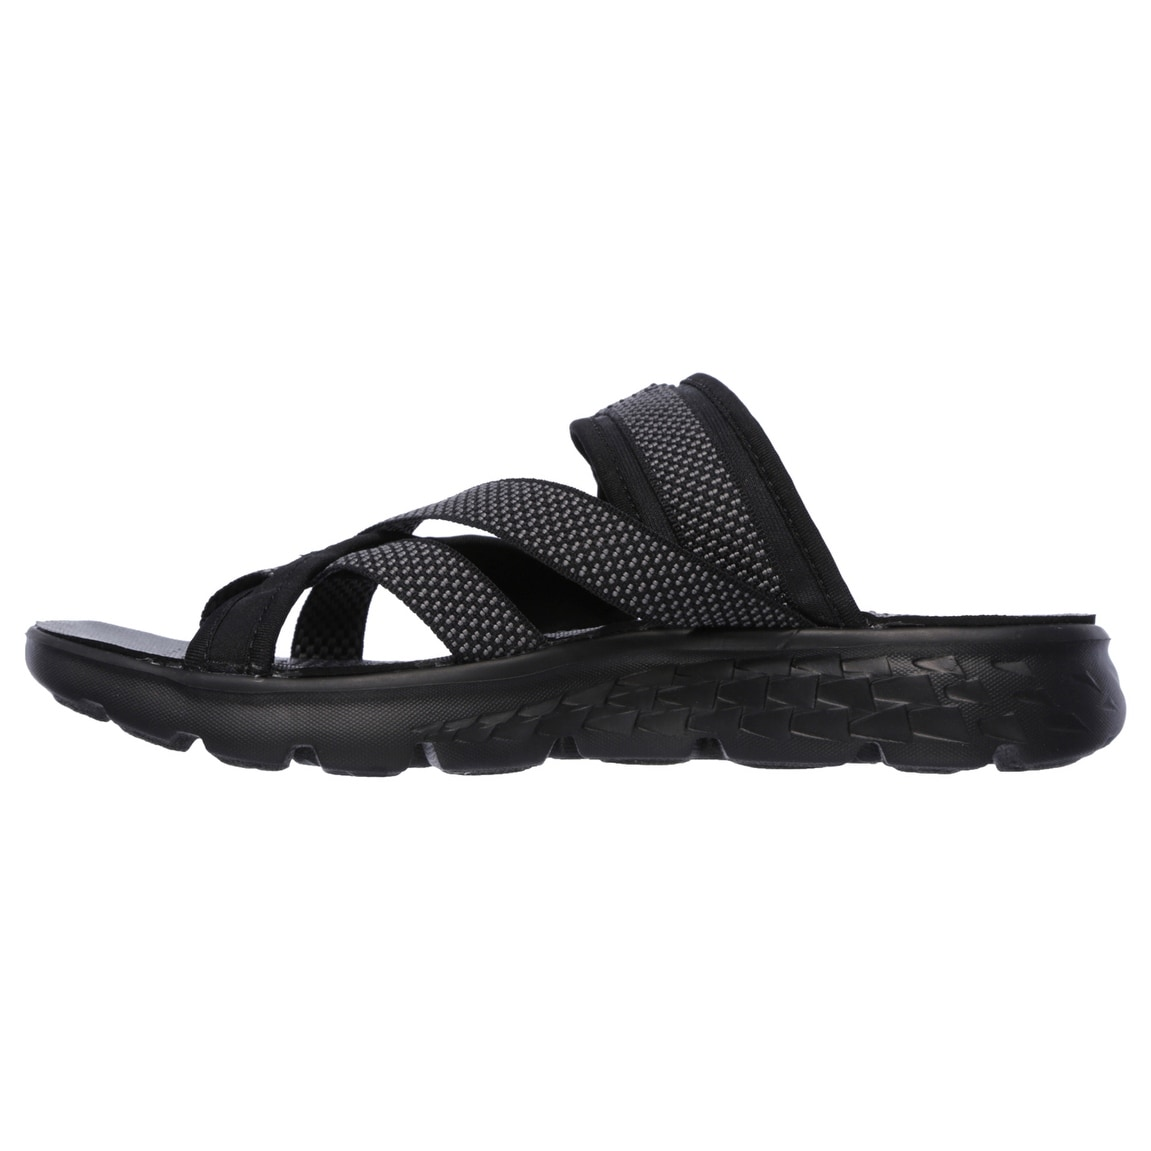 97a9e45ae4a Shop Skechers 14670 BKGY Women s ON THE GO 400-DISCOVER Sandal - Free  Shipping Today - Overstock - 14437136